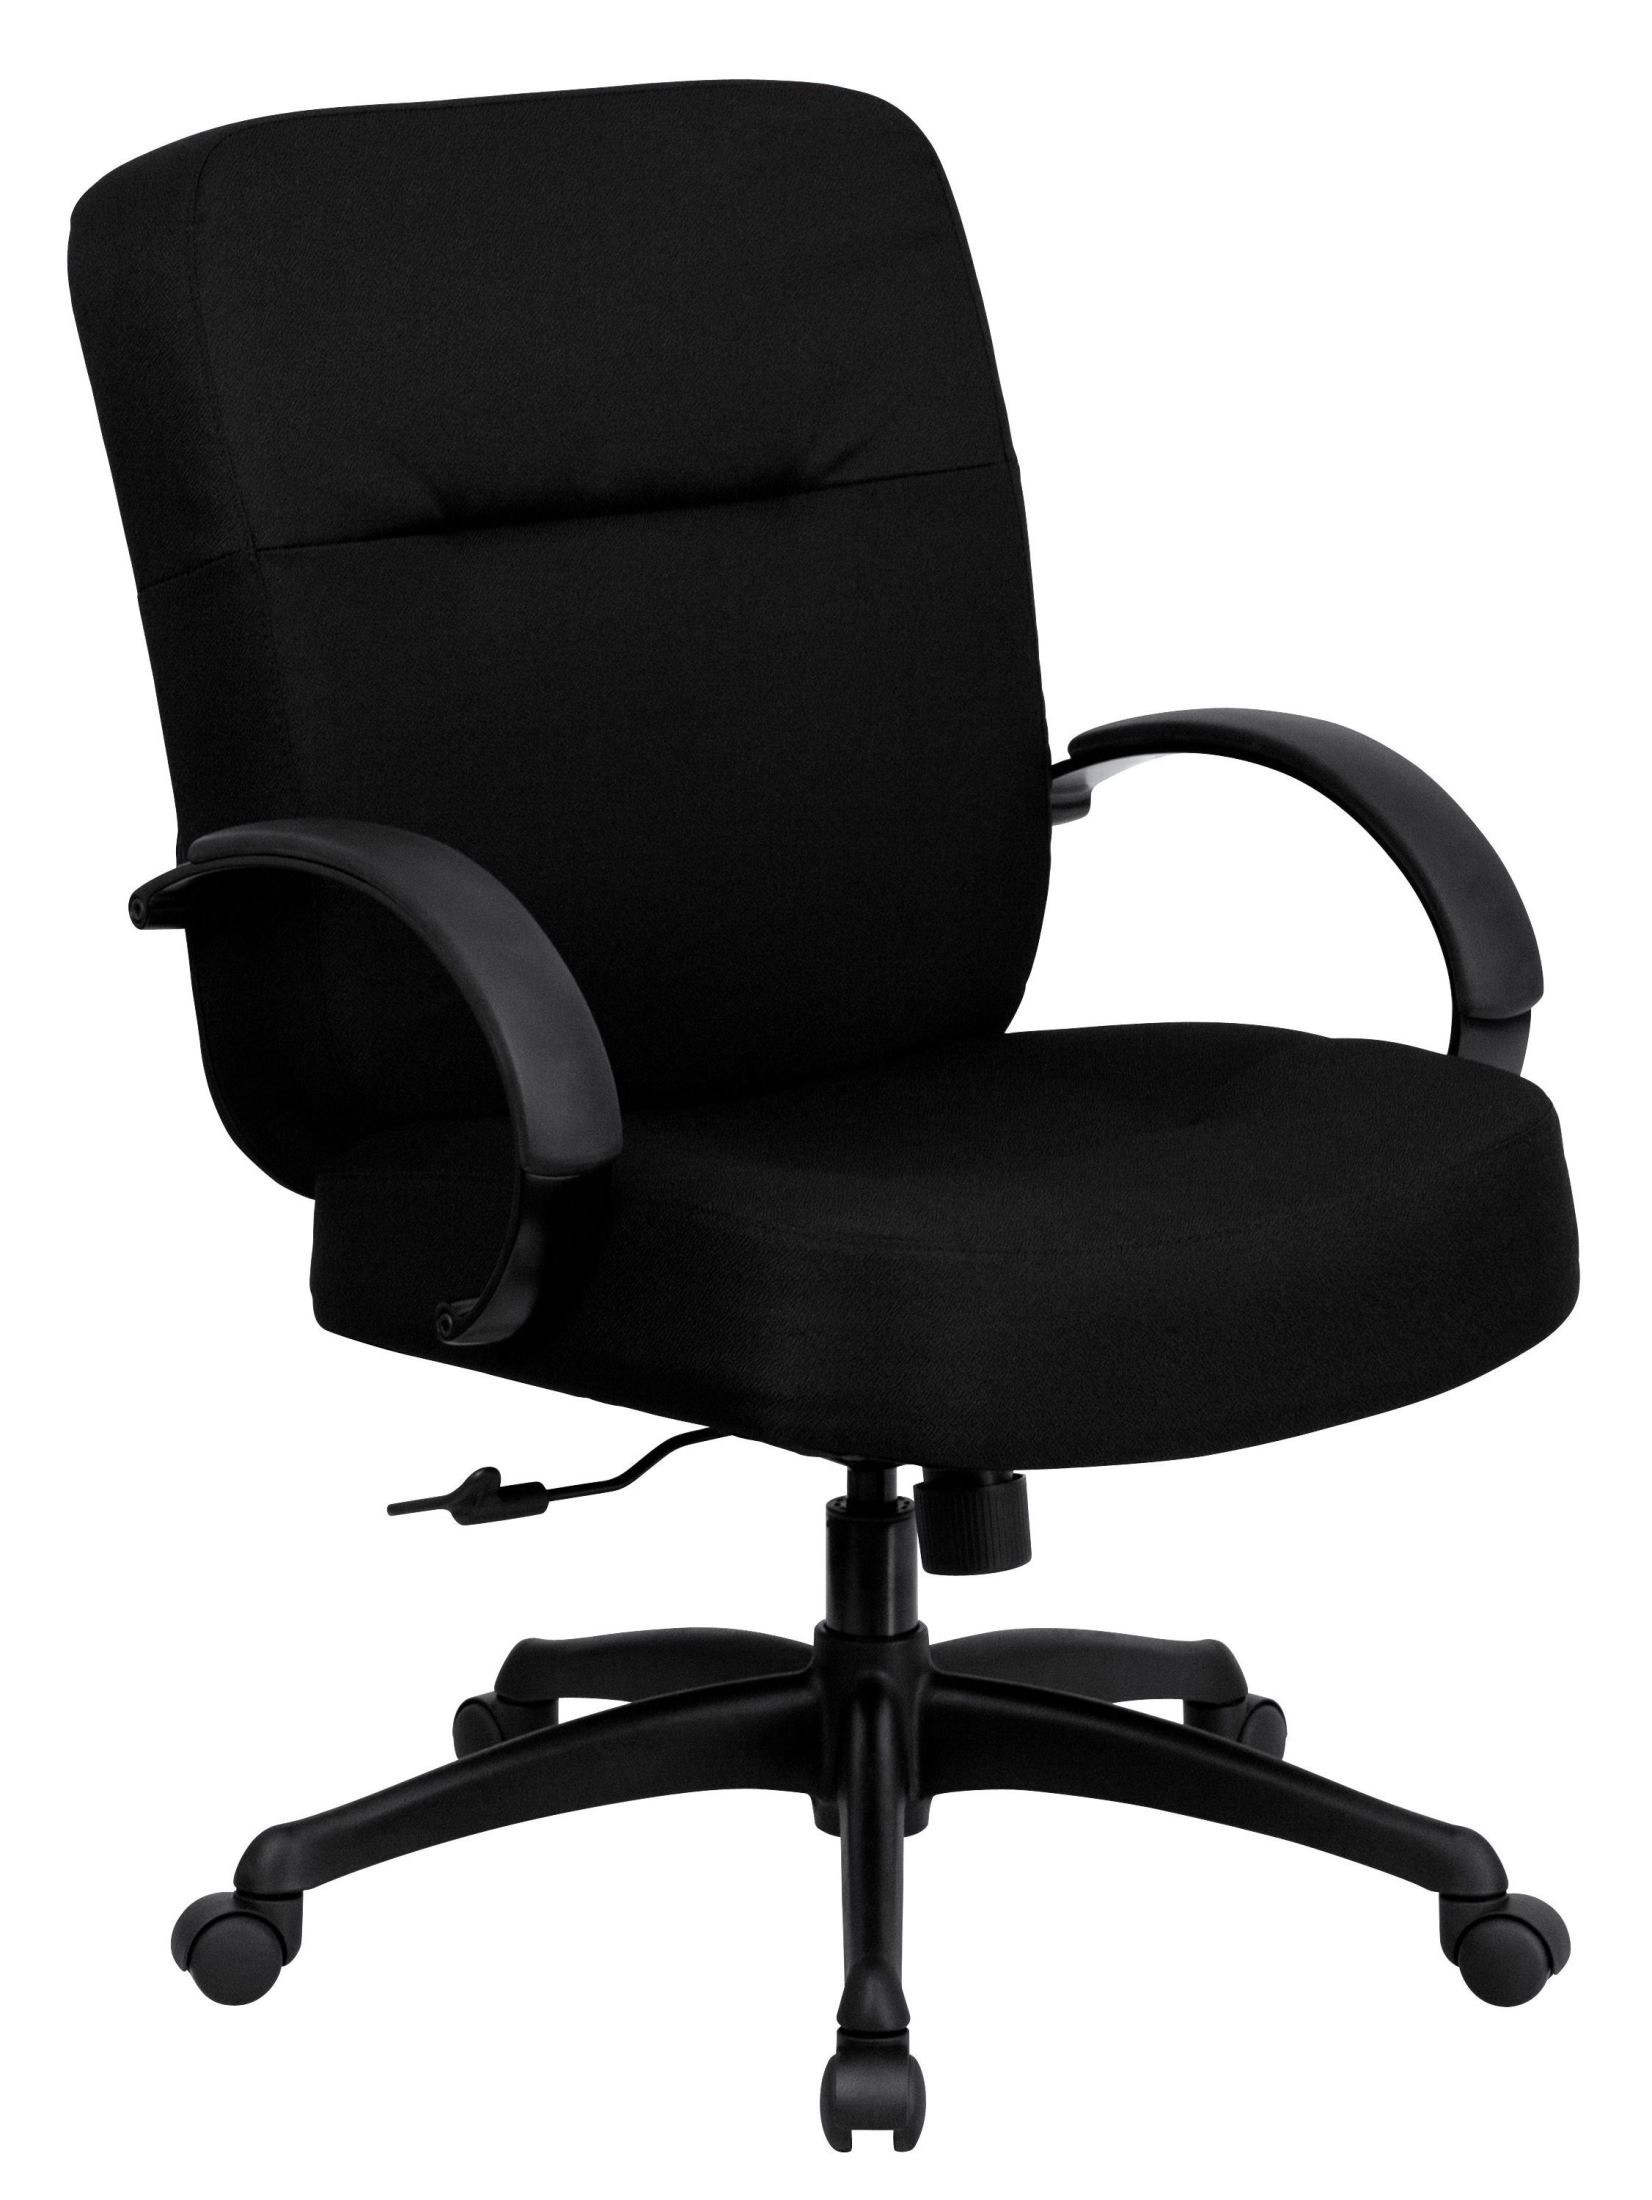 Hercules Series Big Tall Black Fabric Arm Office Chair From Renegade W